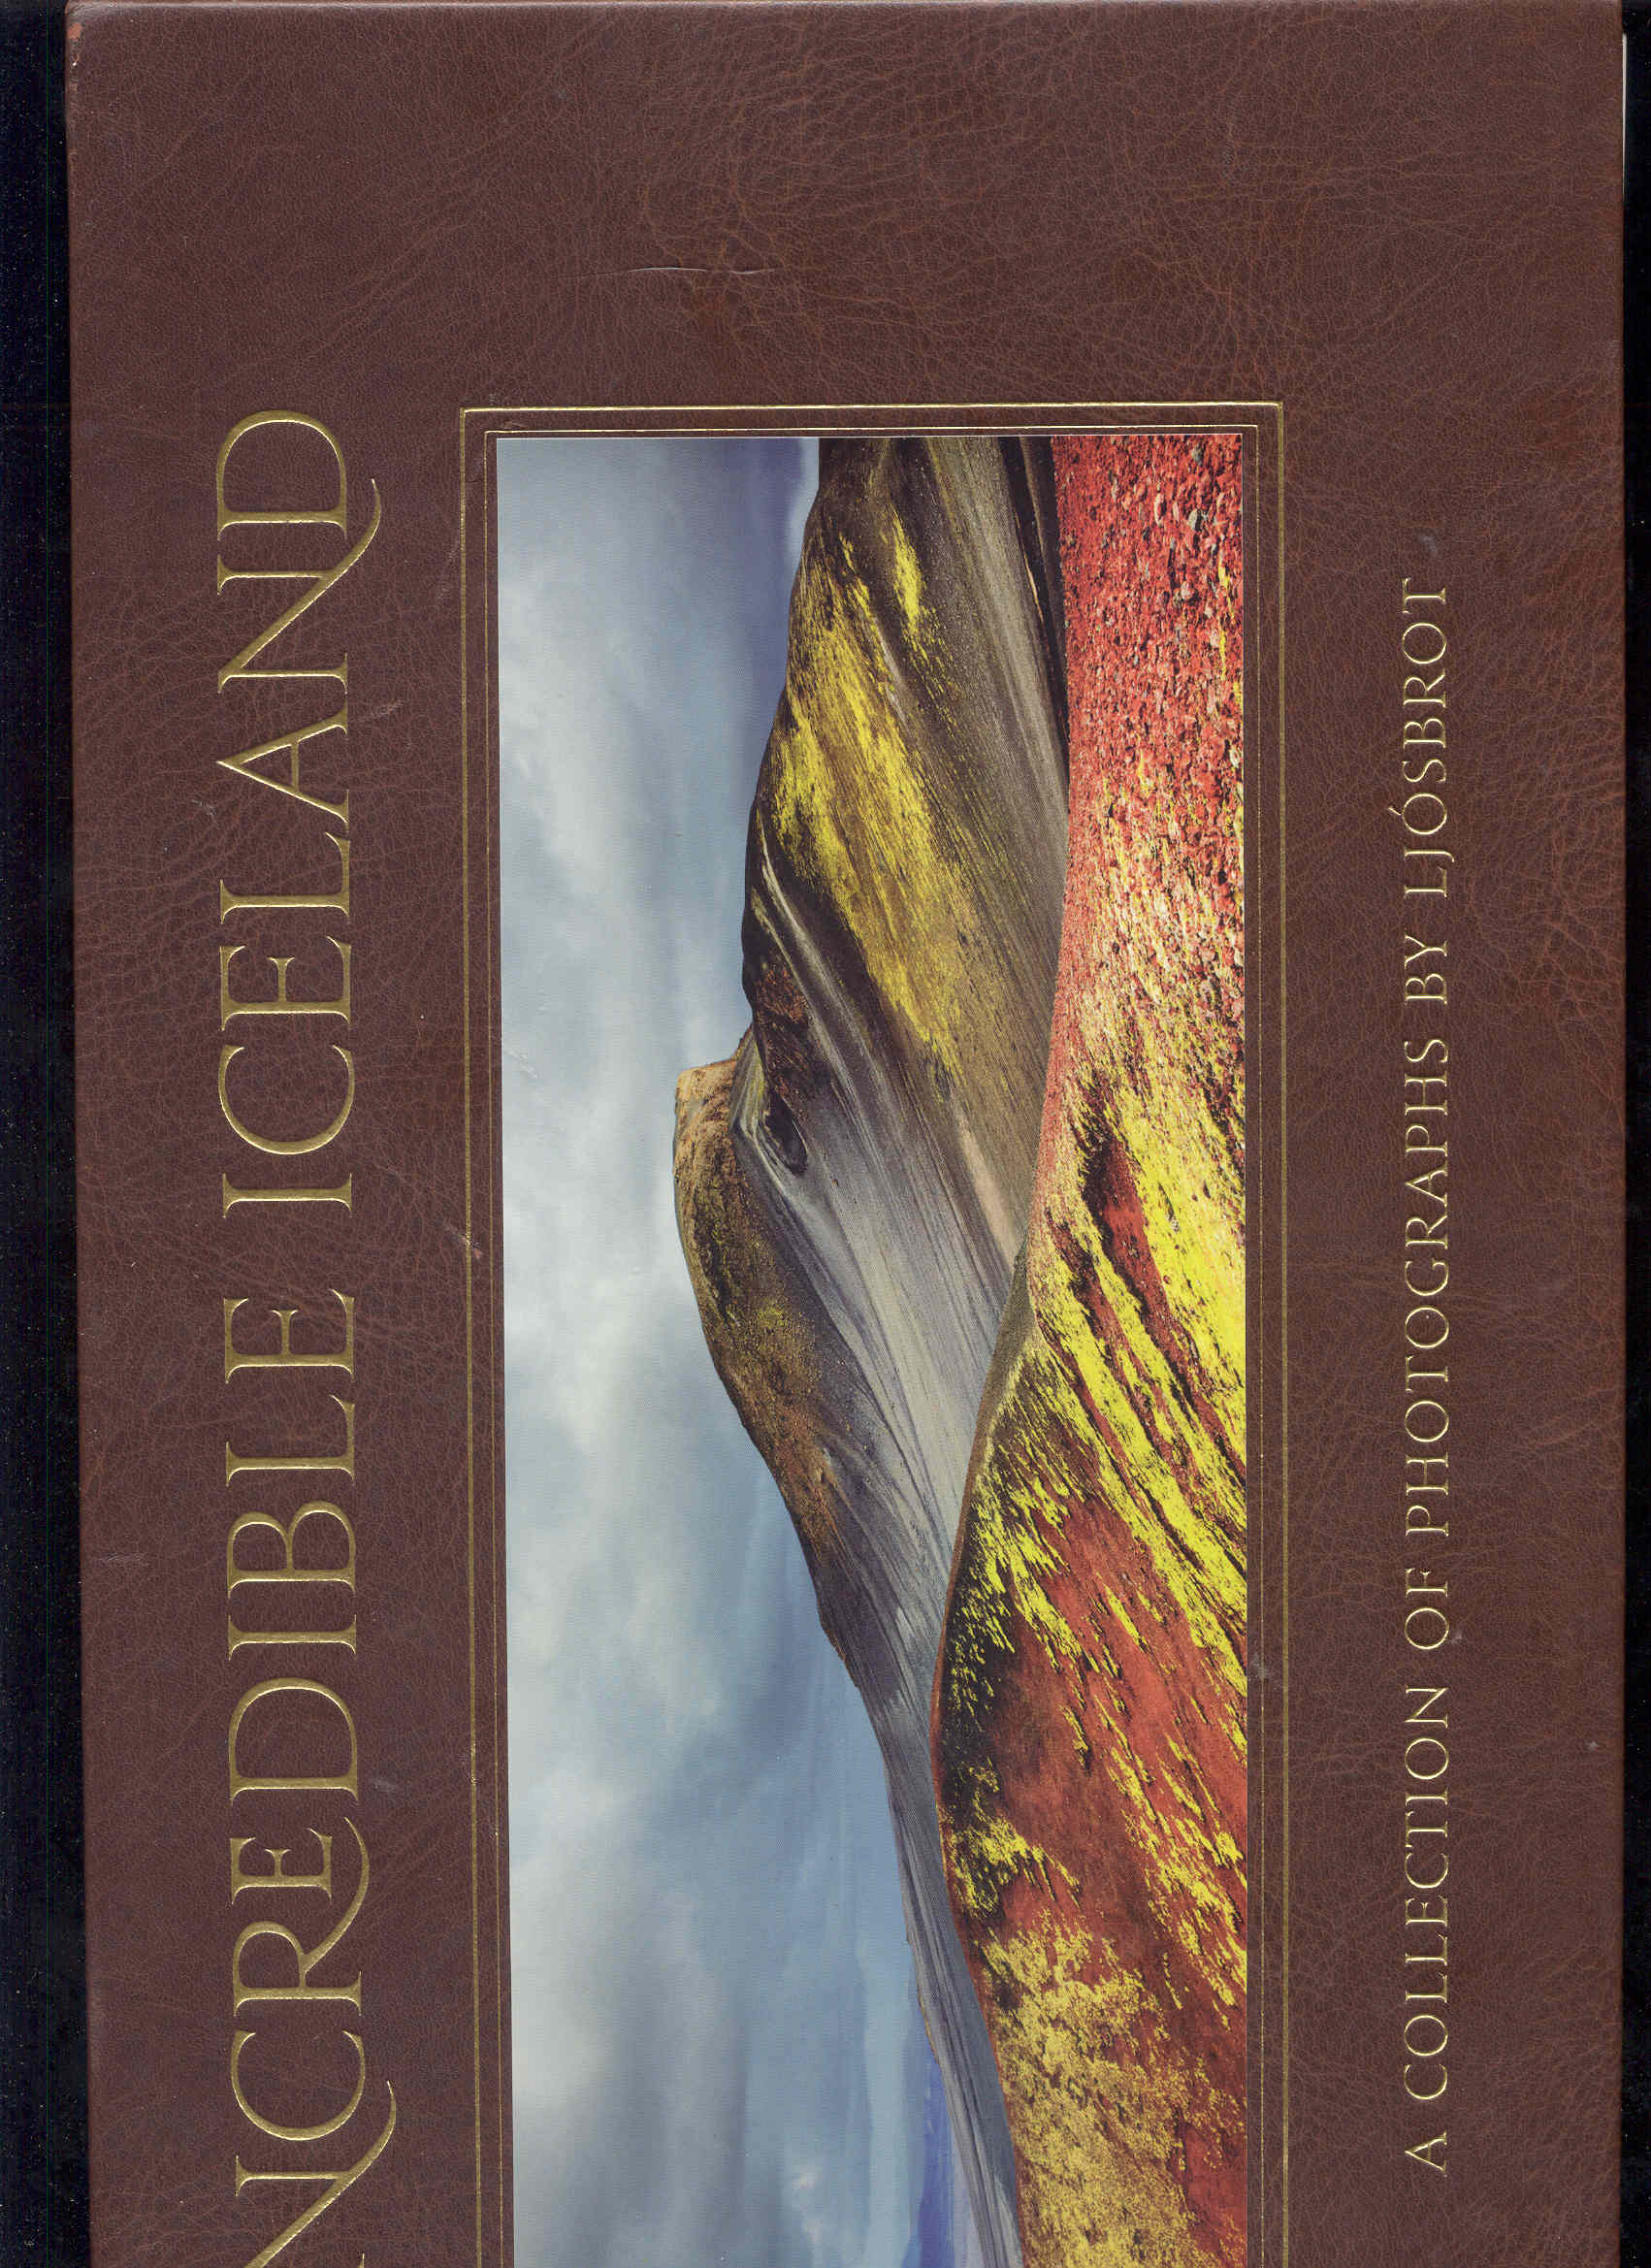 Image for Incredible Iceland: A Collection of Photographs By Ljosbrot